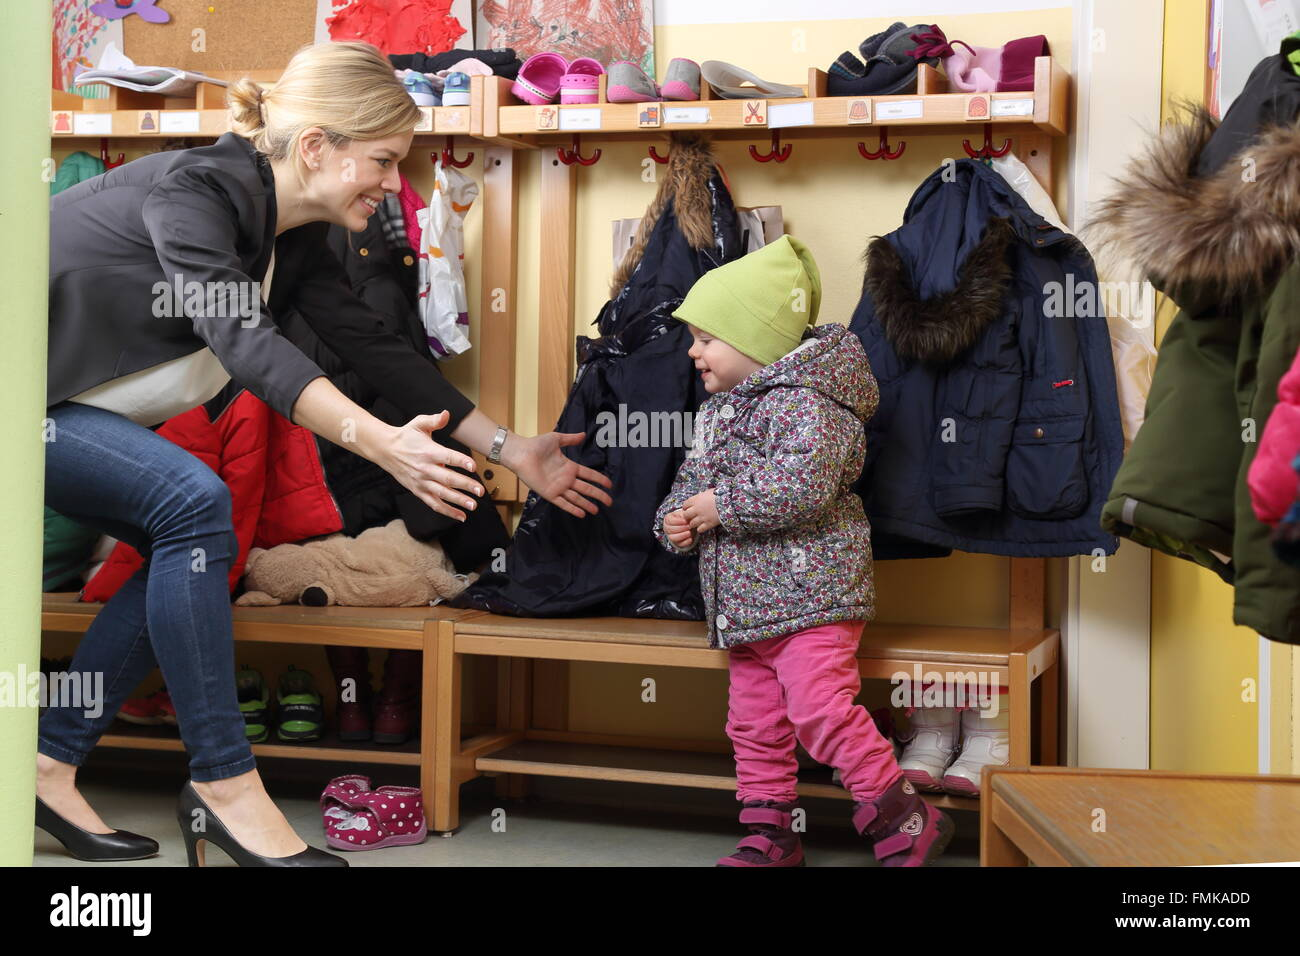 A Mother picking up her child from a Kindergarten in wardrobe - Stock Image